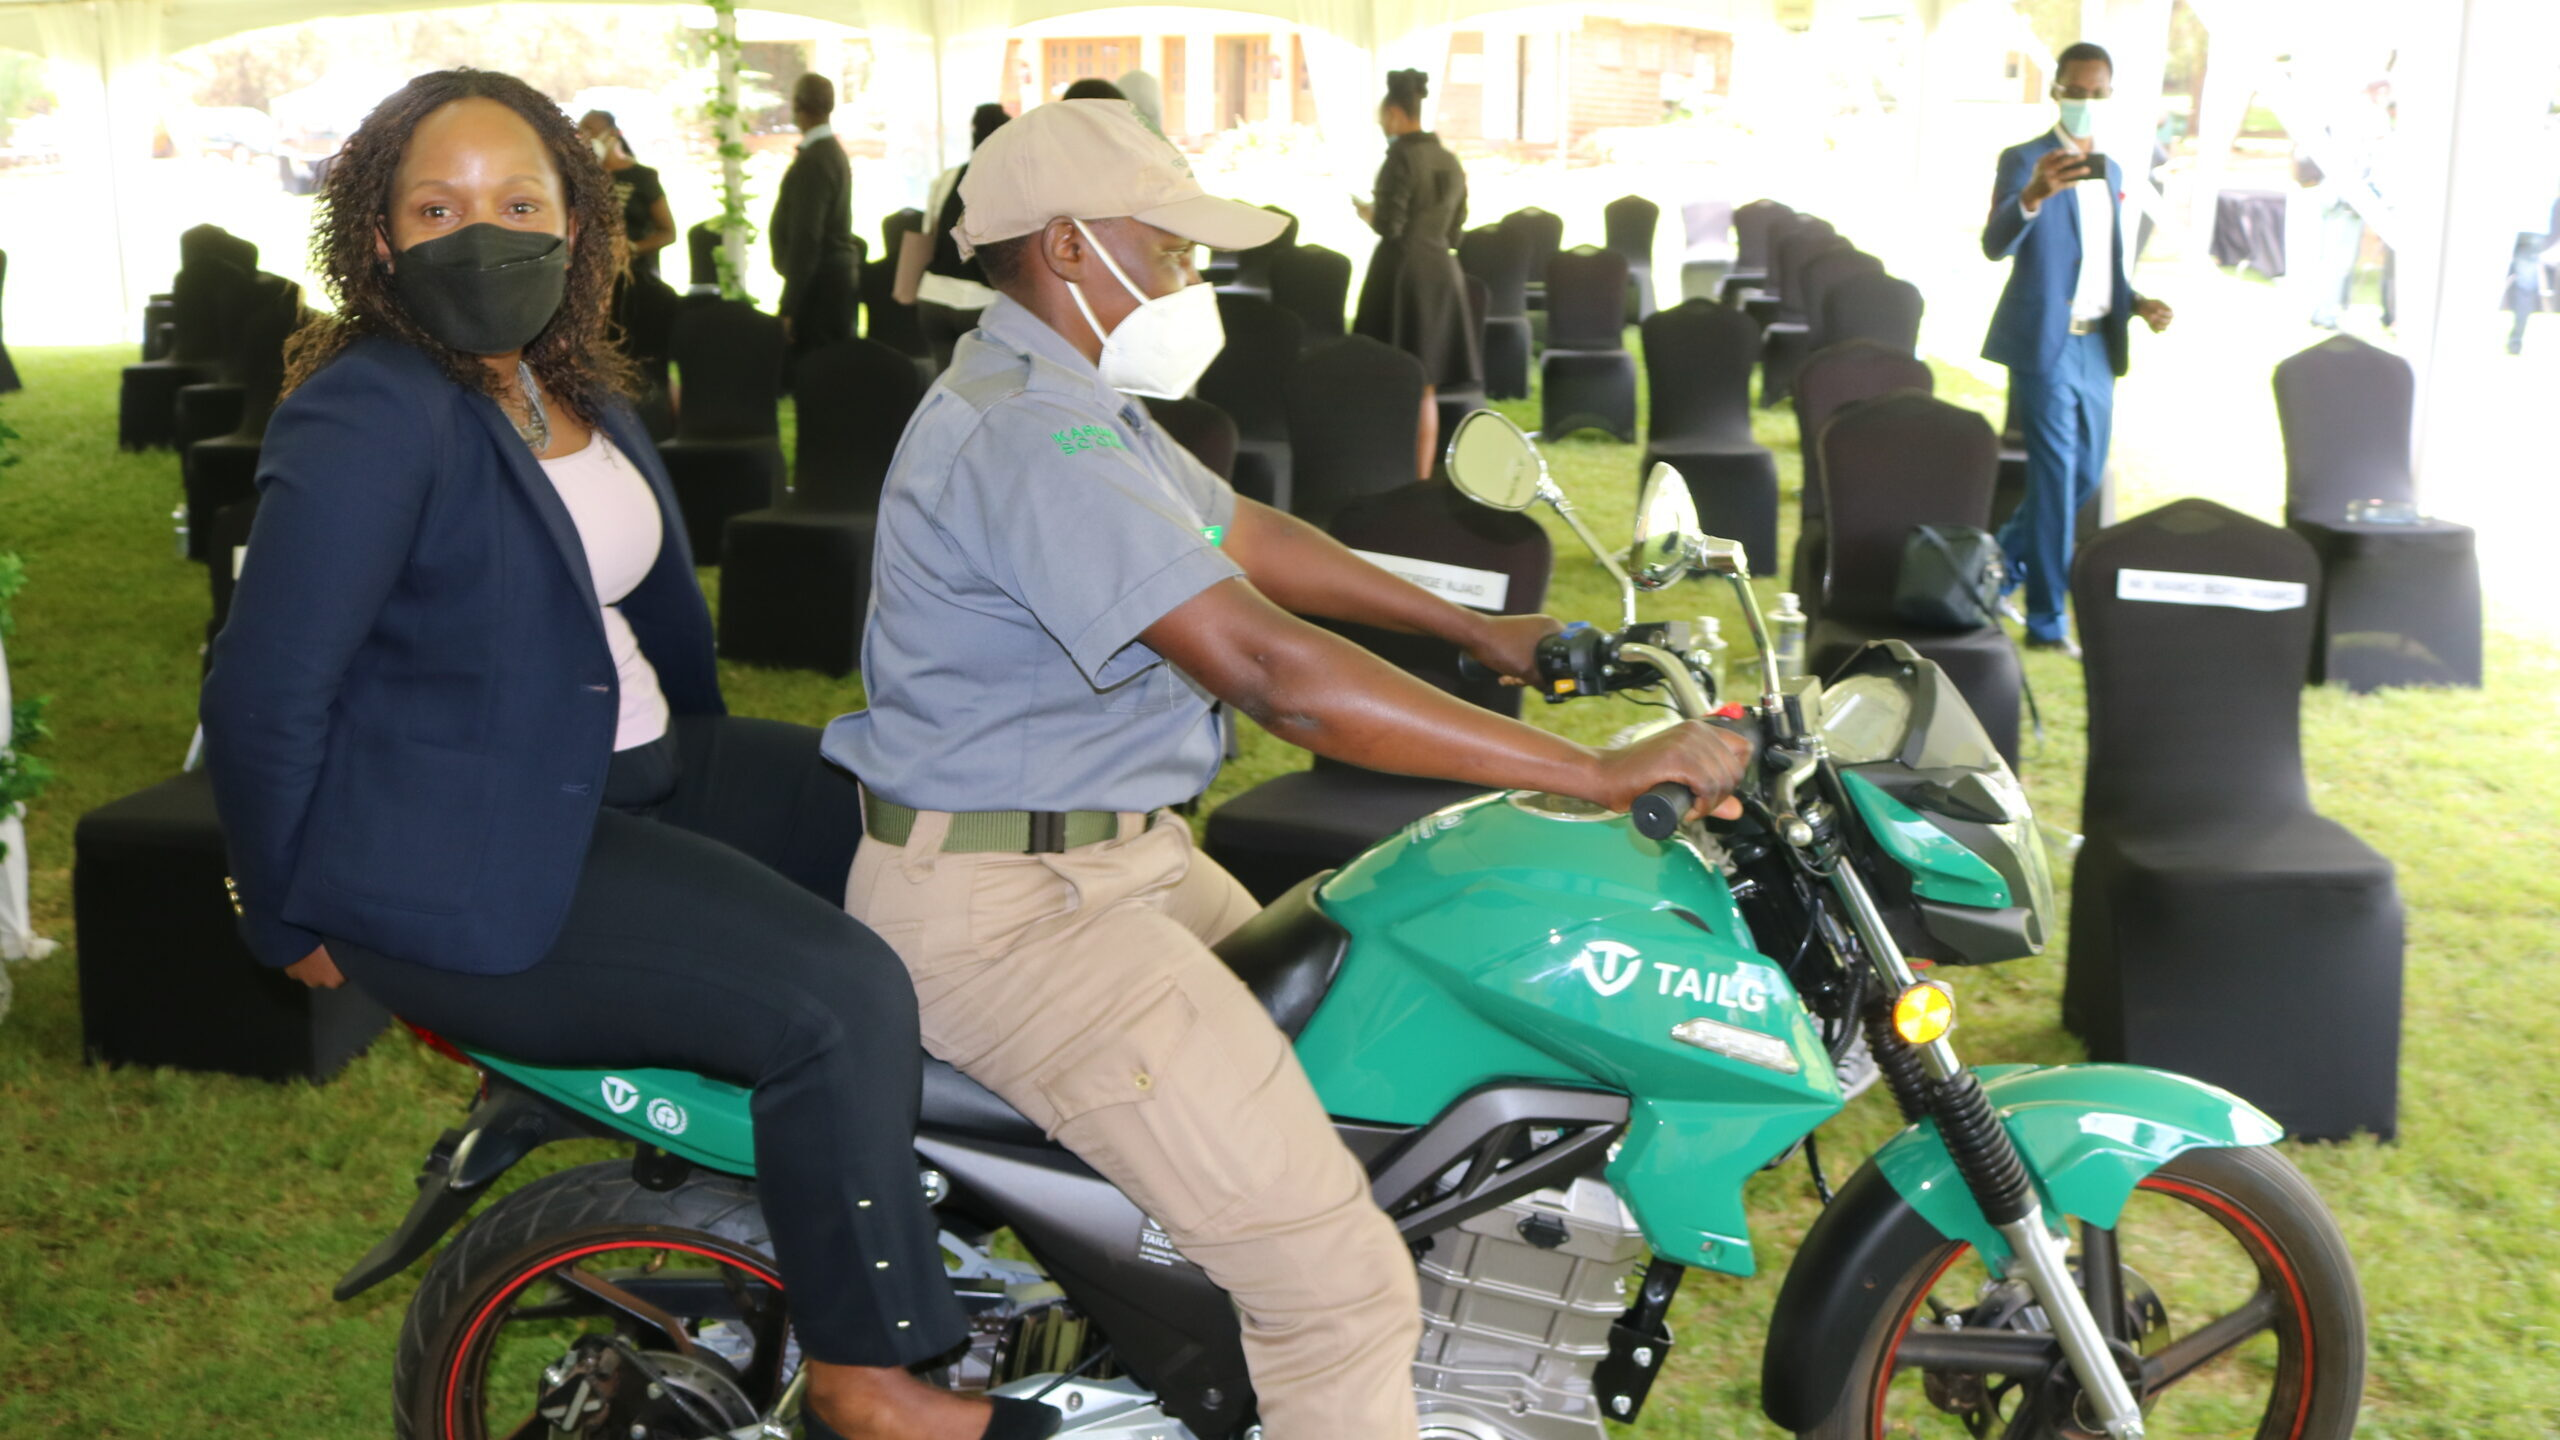 Two-Wheeled Hope: Kenya Embraces Electric Motorcycle Project, Ups E-Mobility Goals